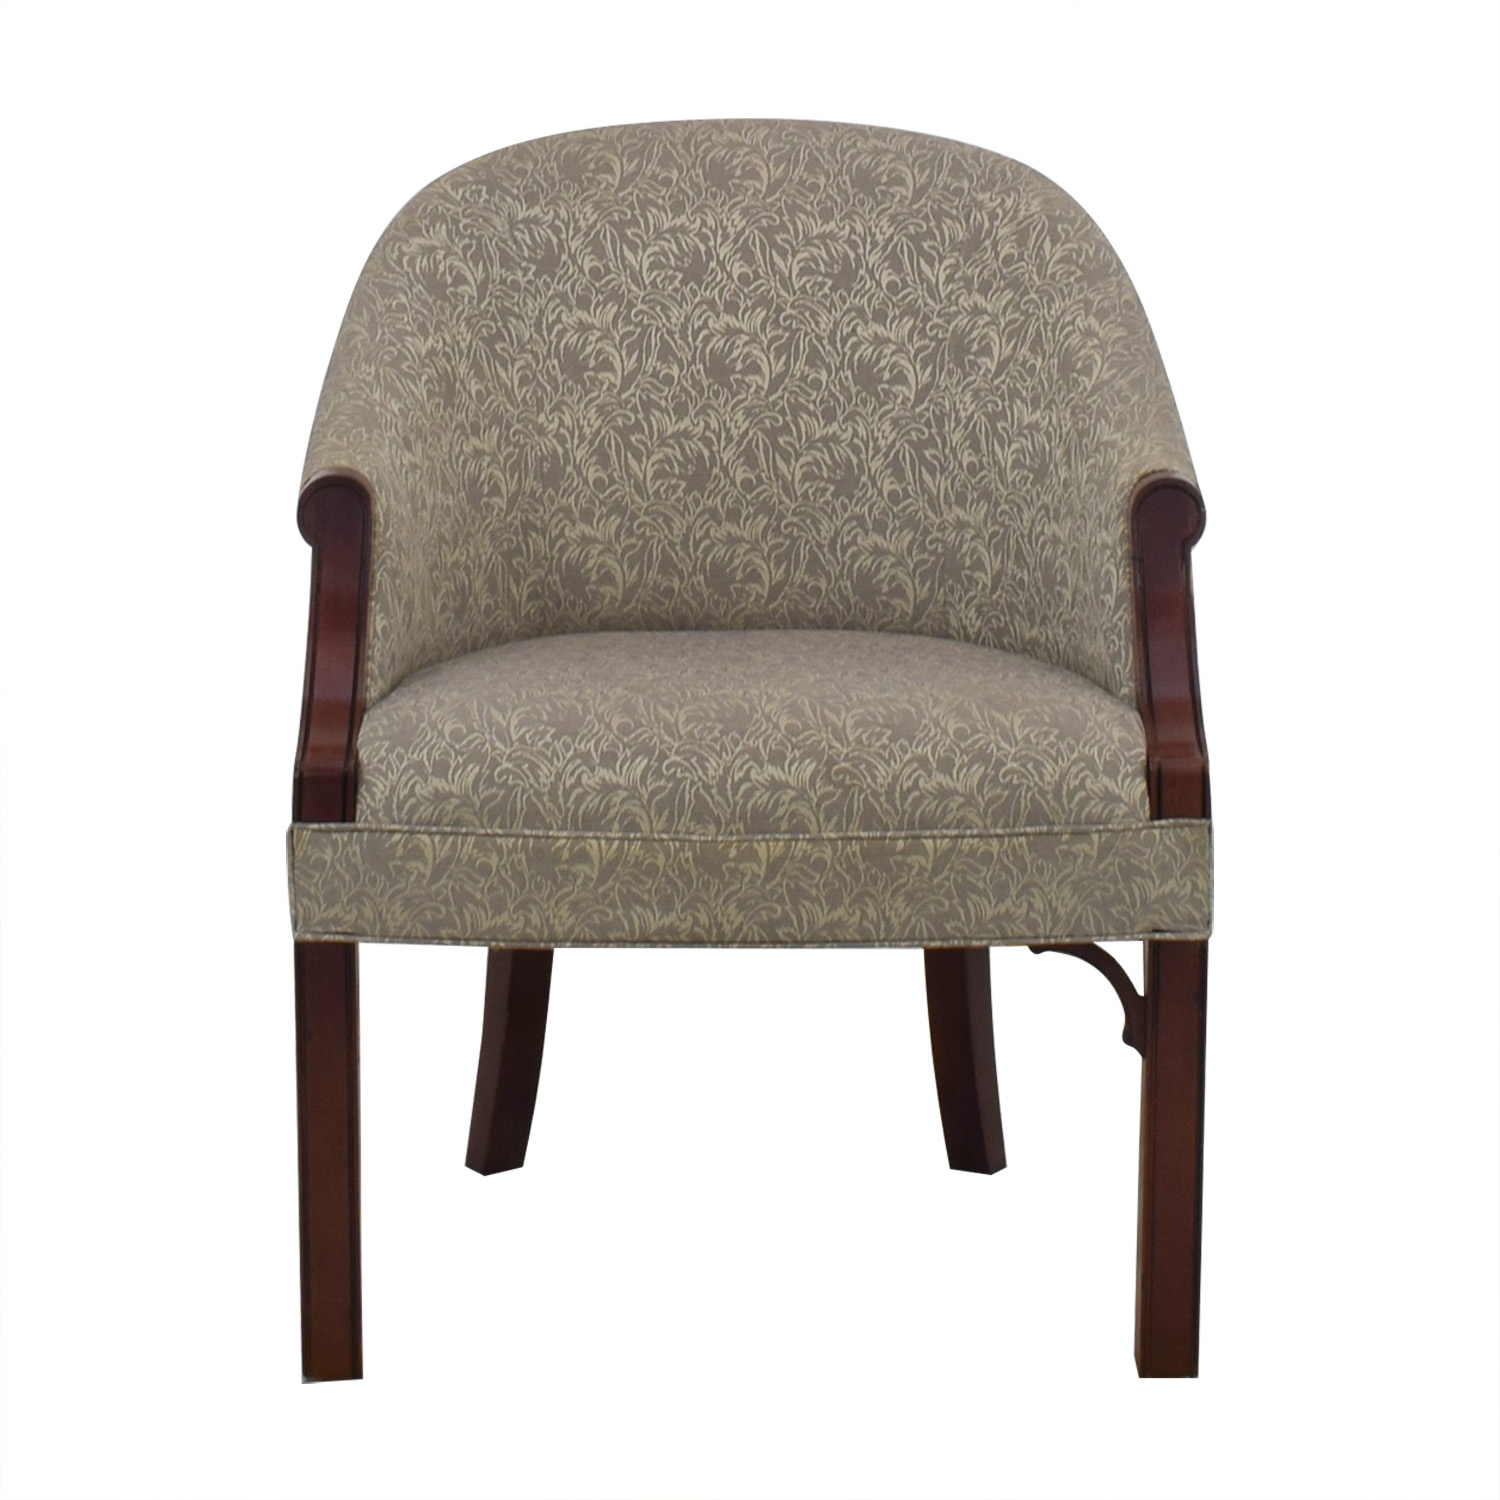 Kimball Kimball Independence Newcastle Chair discount